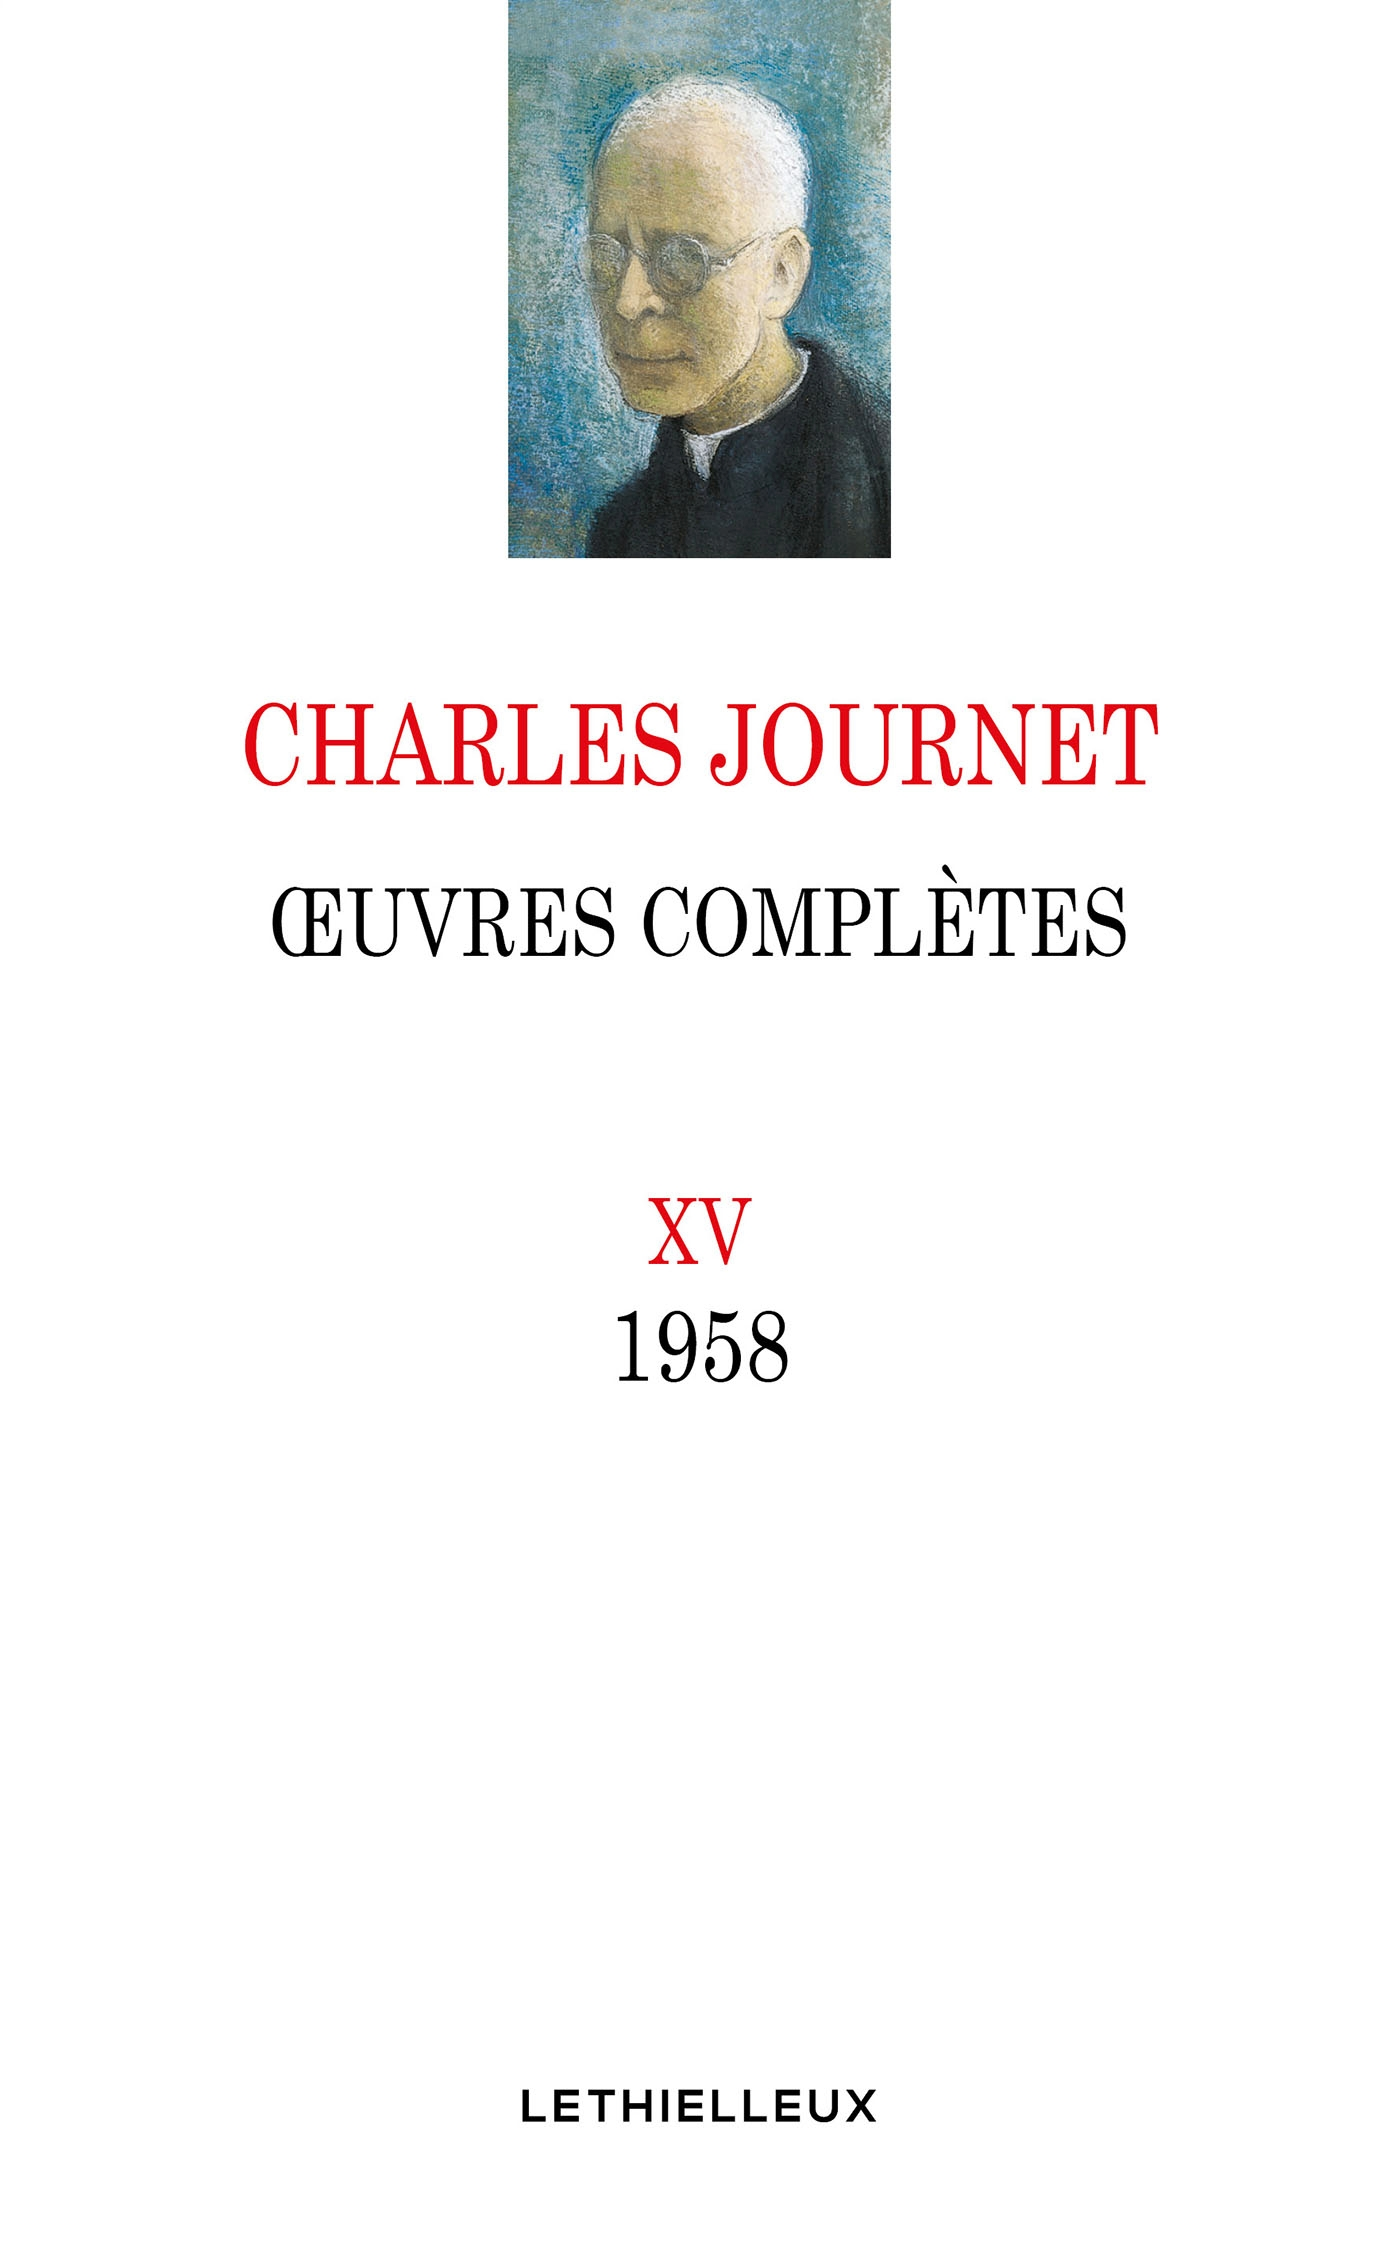 Oeuvres complètes, volume XV